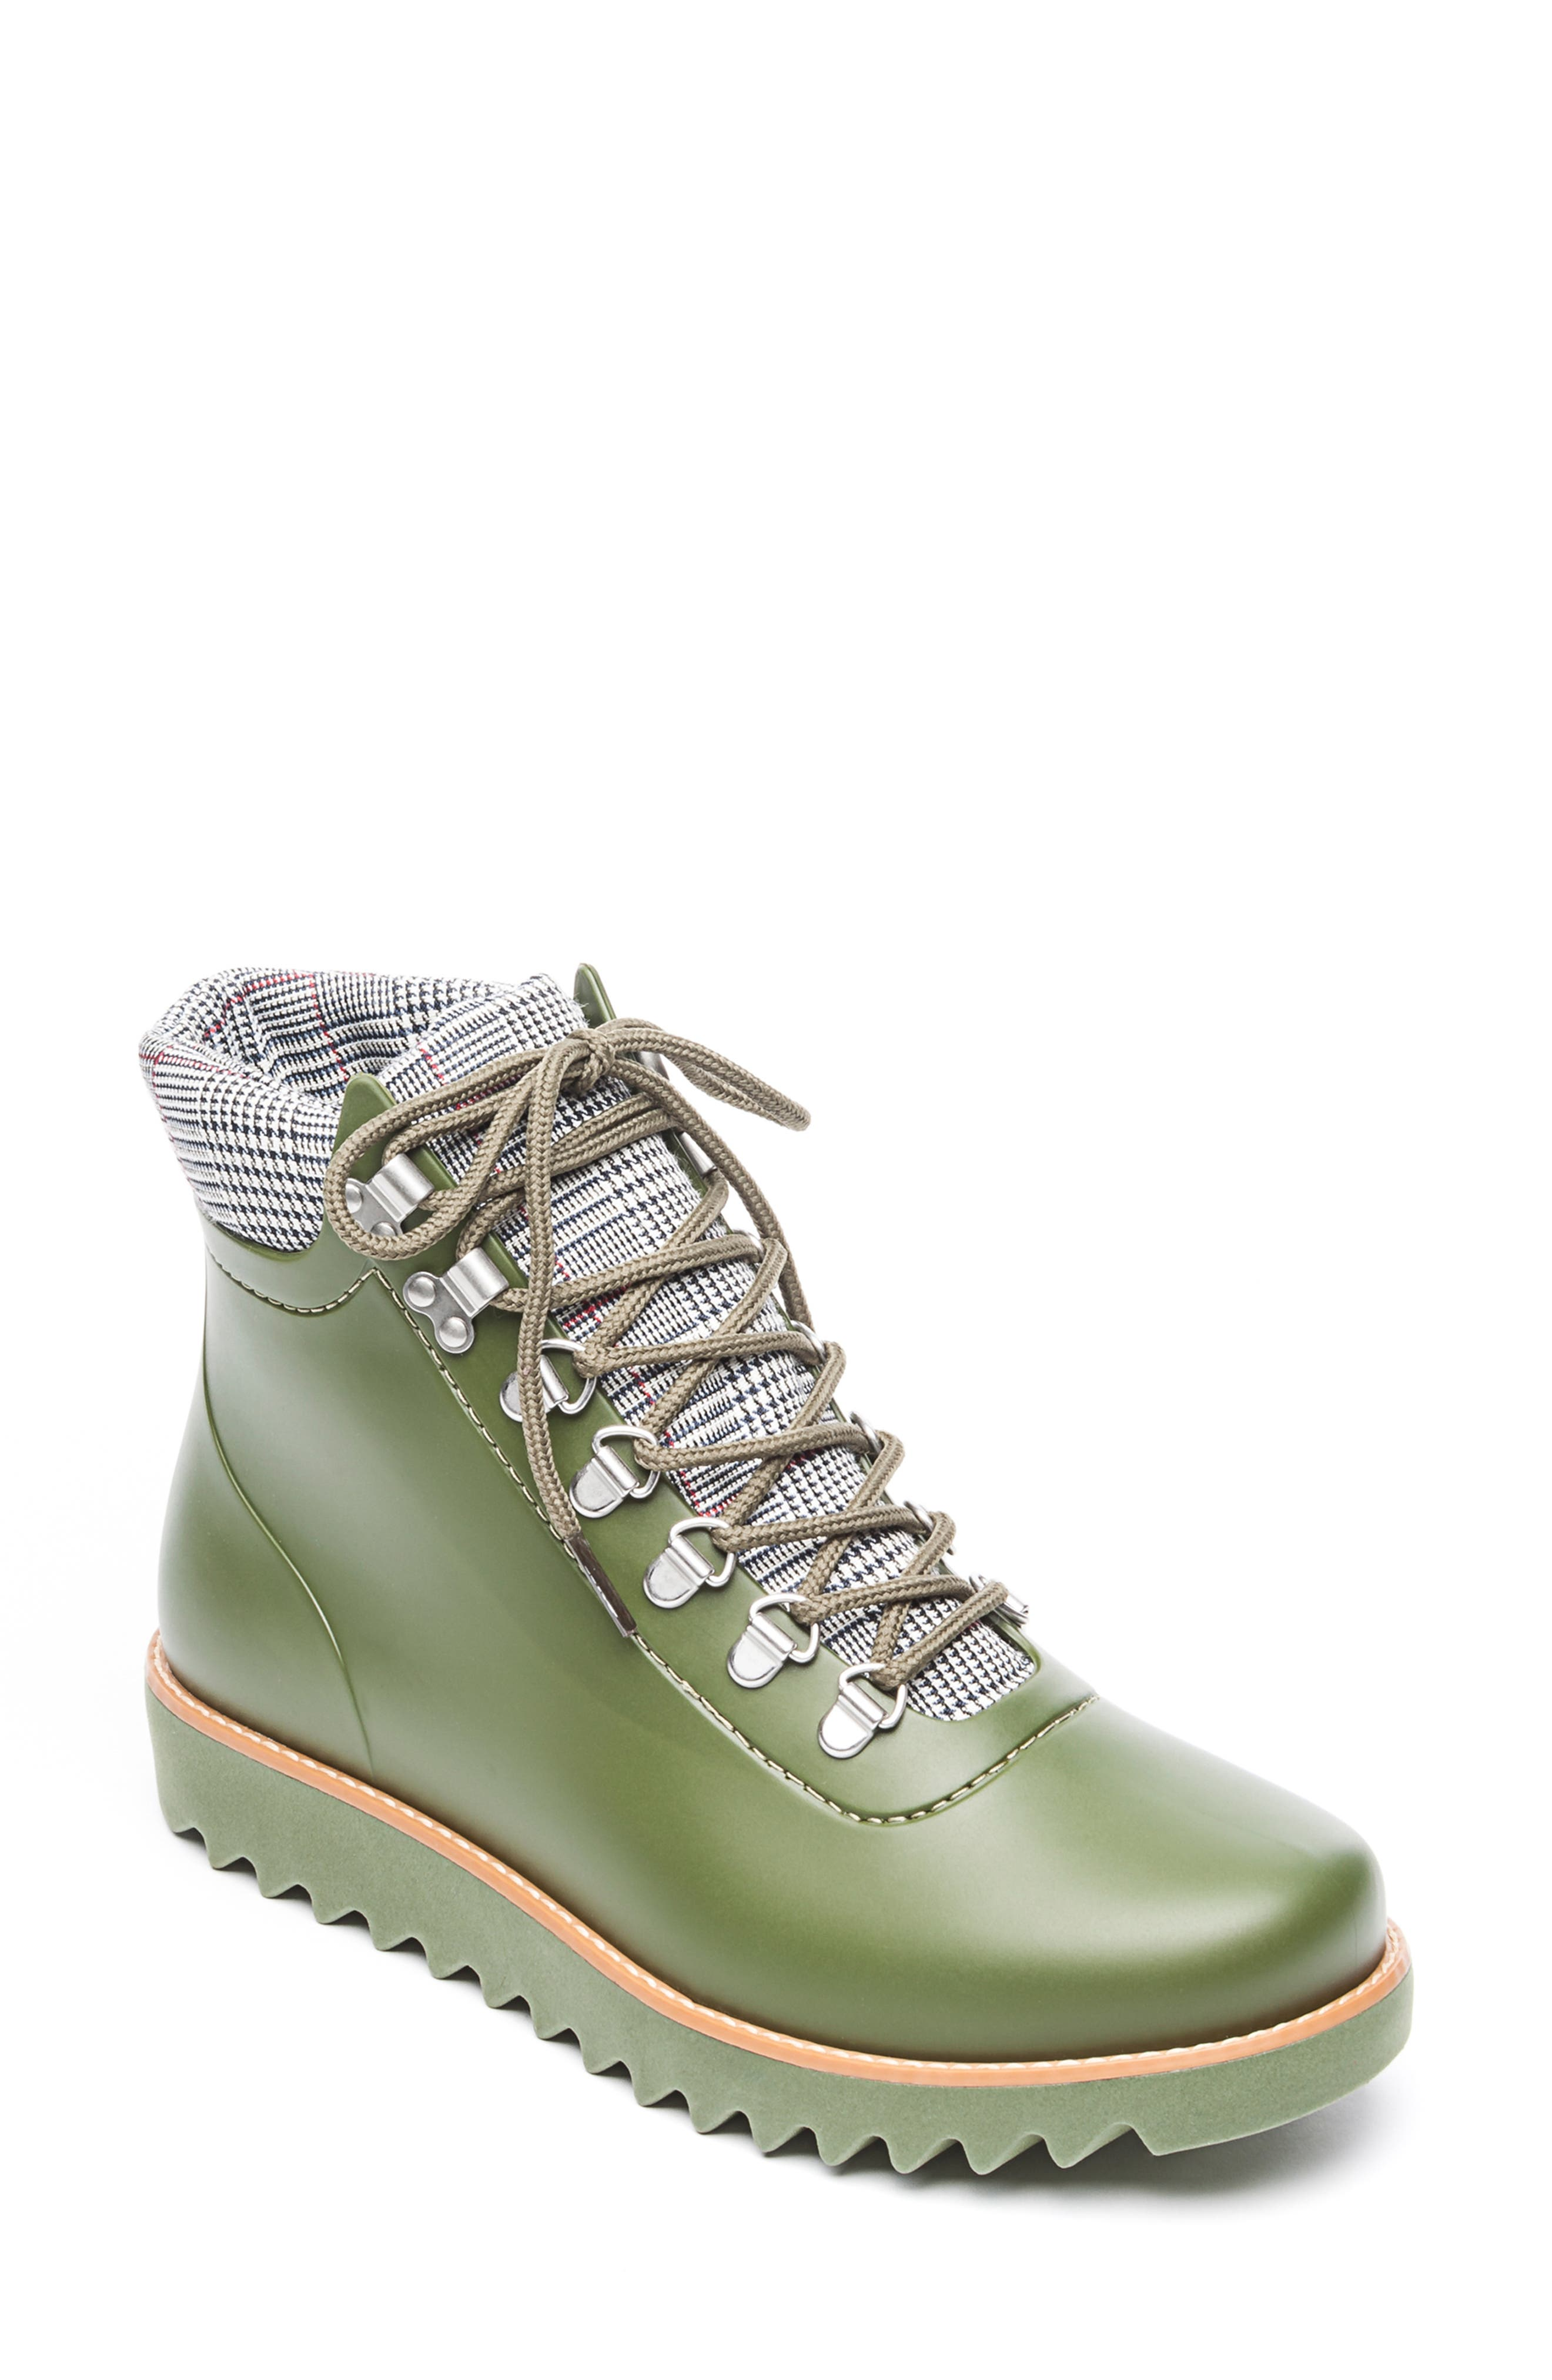 BERNARDO, Winnie Waterproof Rain Bootie, Main thumbnail 1, color, MILITARY GREEN